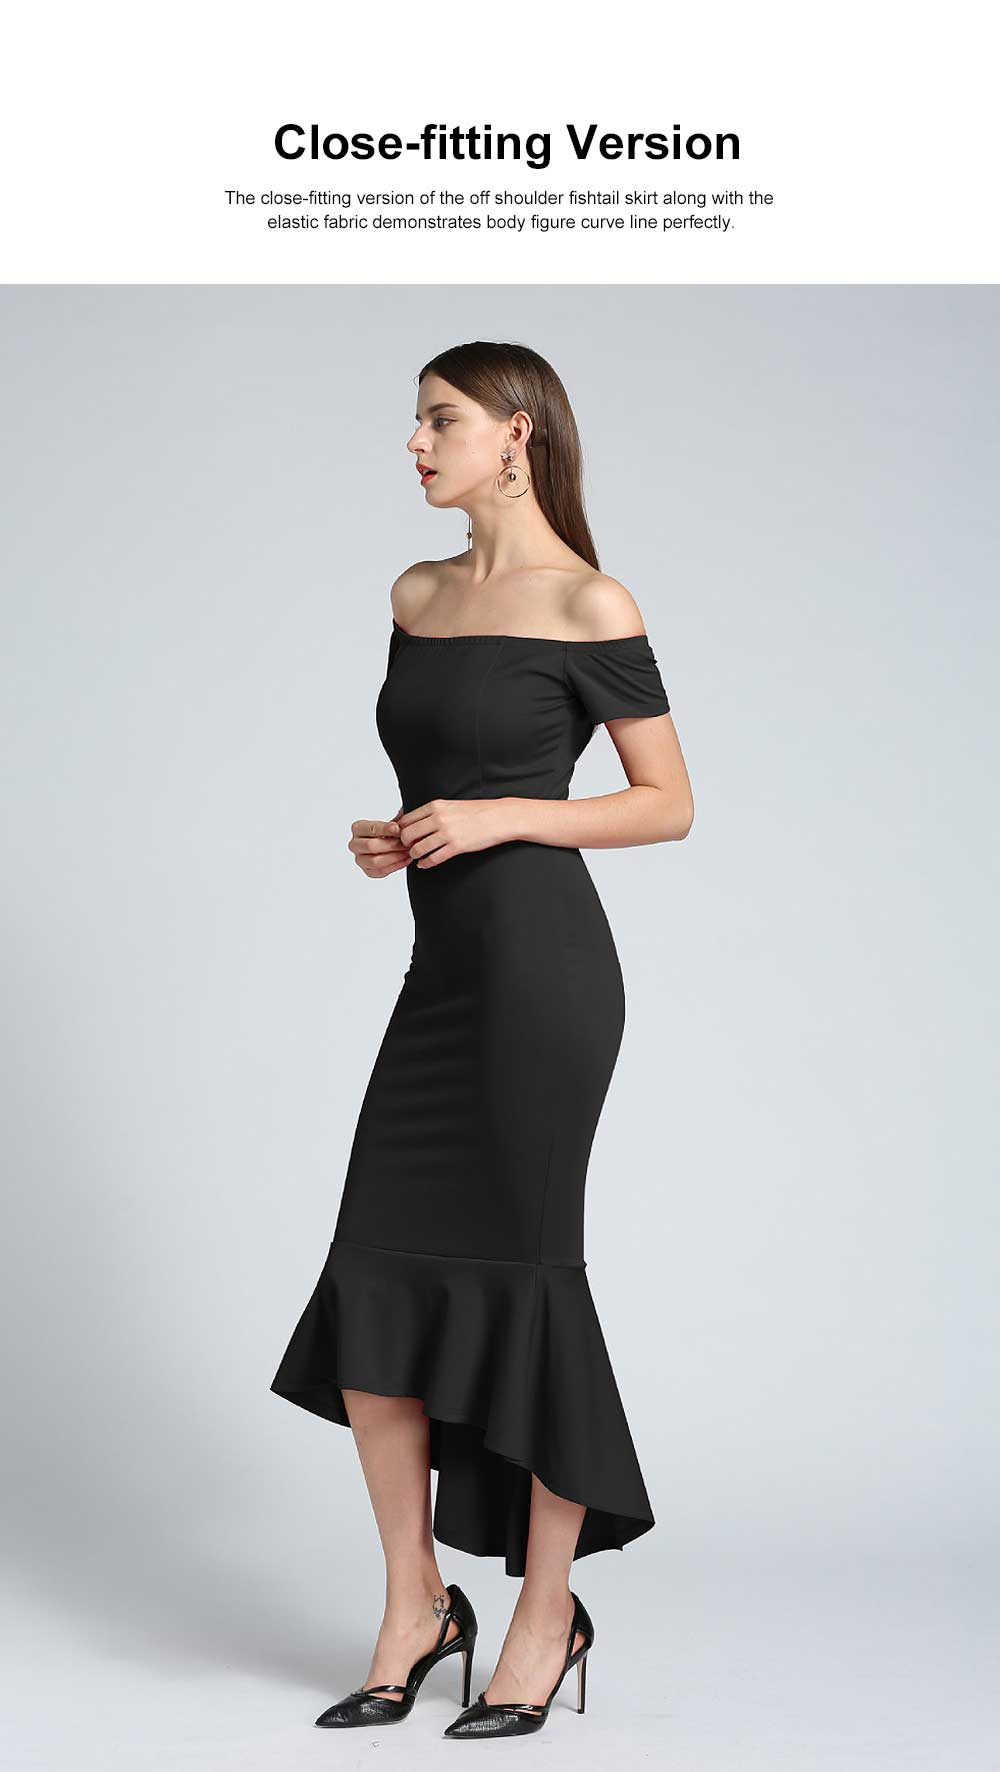 New Style One-piece Dress for Party Western Style Evening Formal Dress Amazon Best-selling Off Shoulder Short Sleeve Fishtail Skirt Evening Dress 1